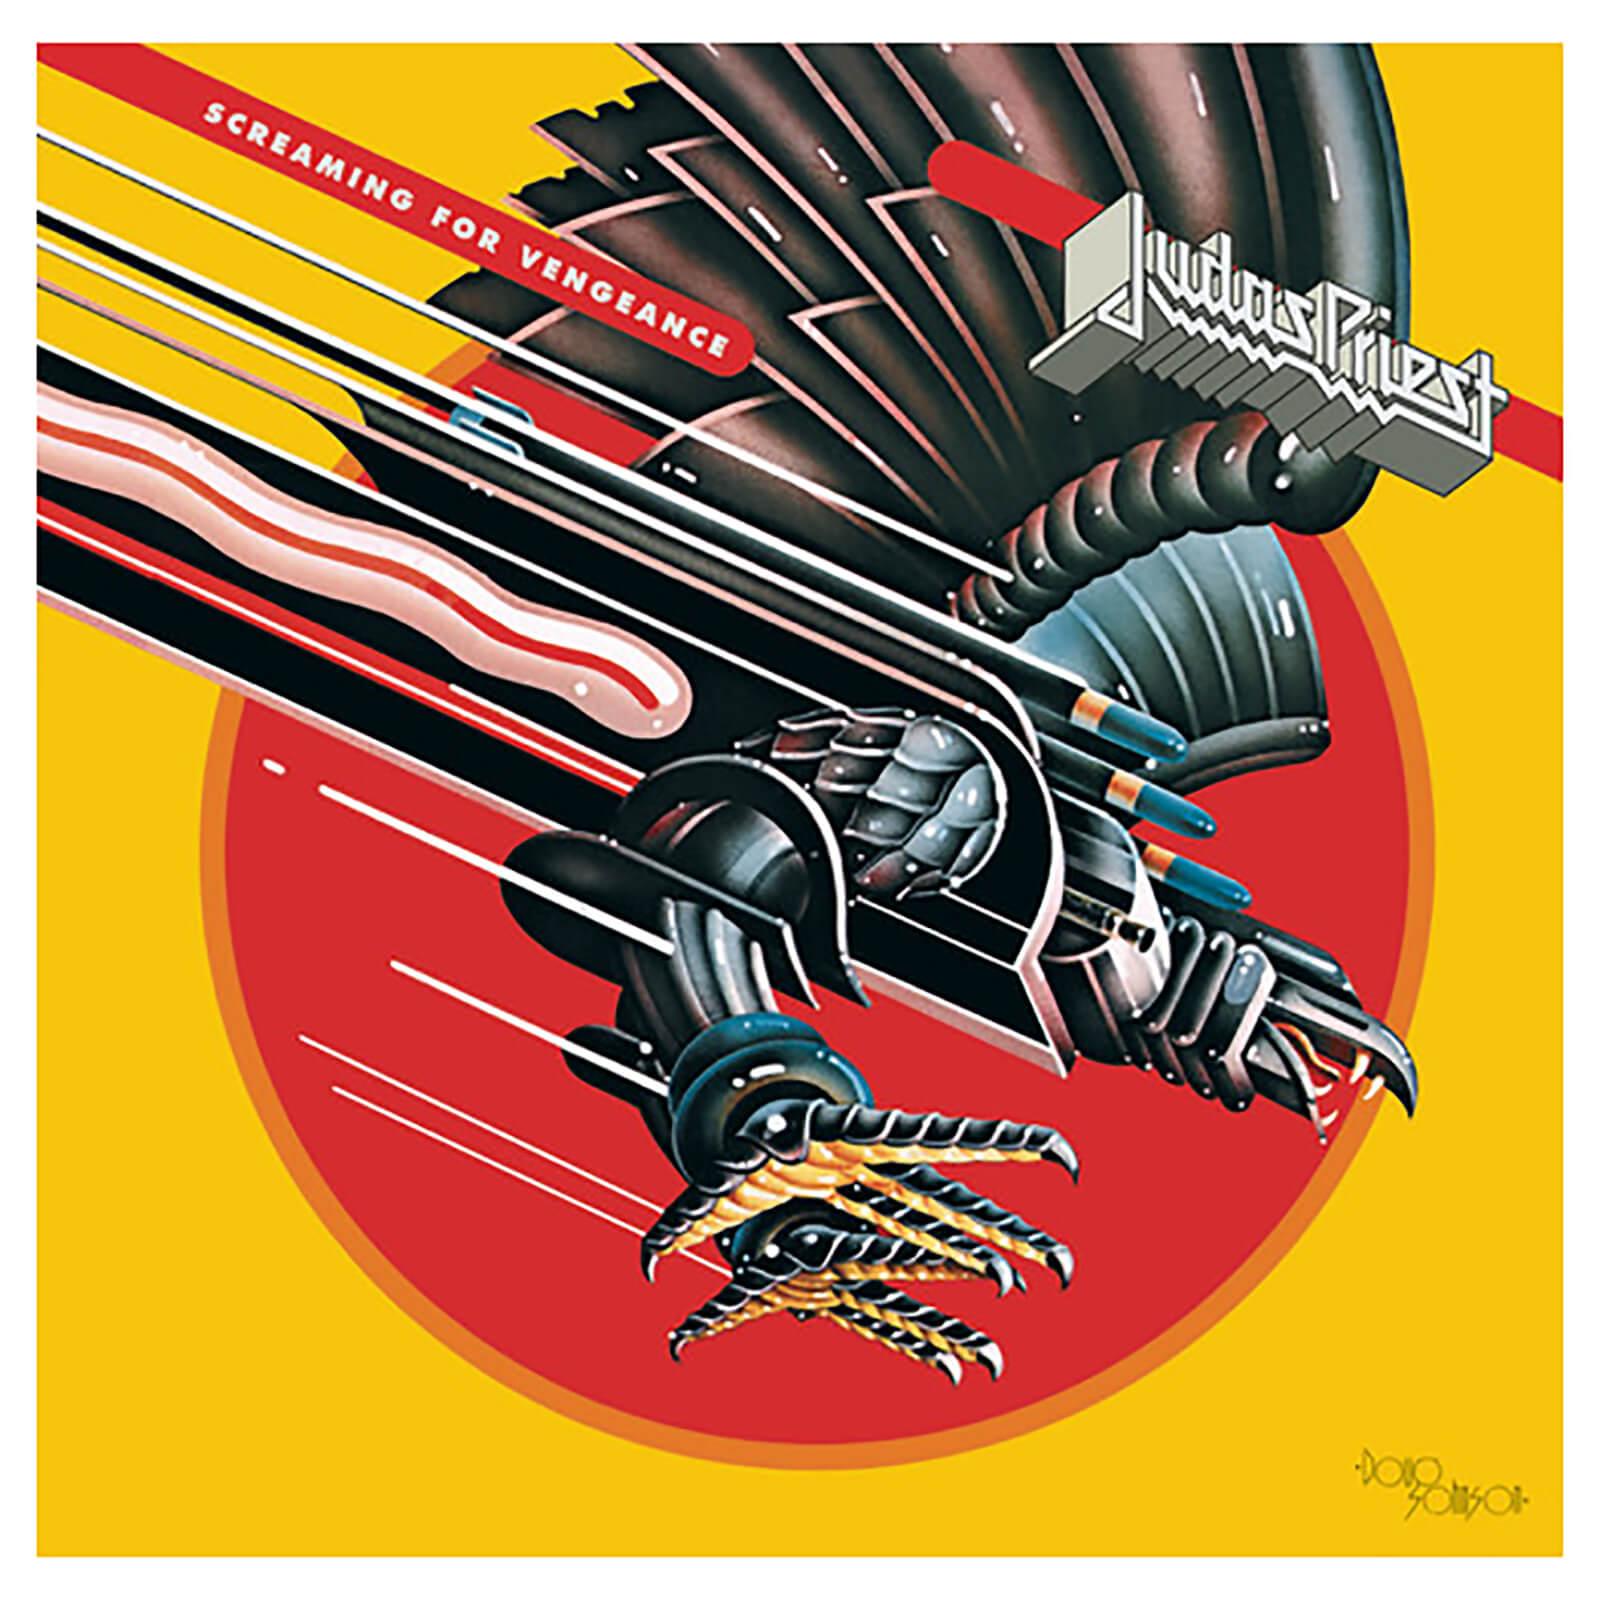 Judas Priest - Screaming For Vengeance - Vinyl